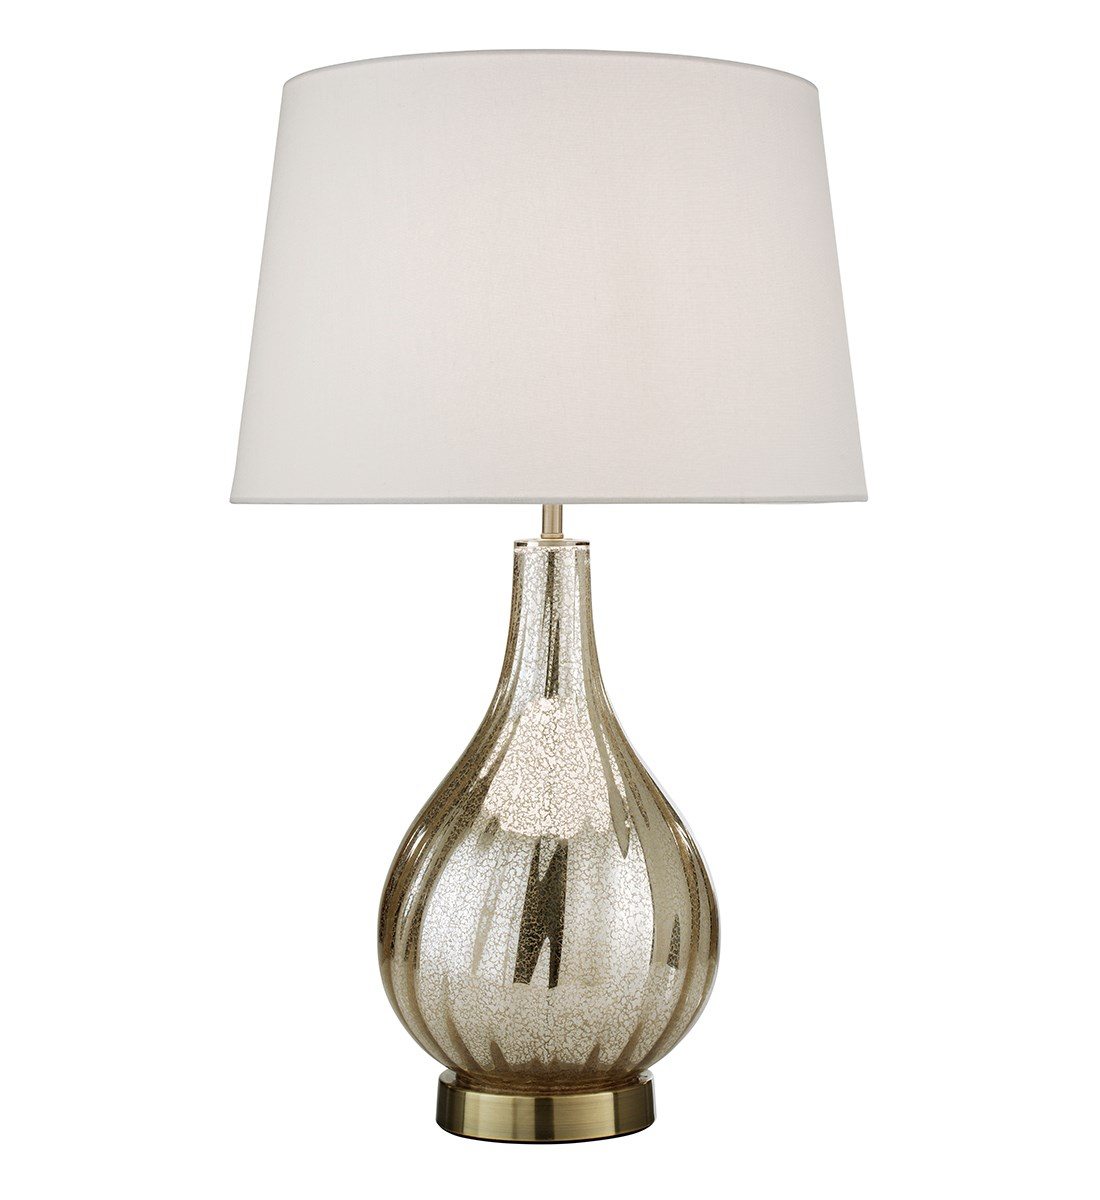 Image of: Emily Table Lamp Mercury Glass Table Lamp